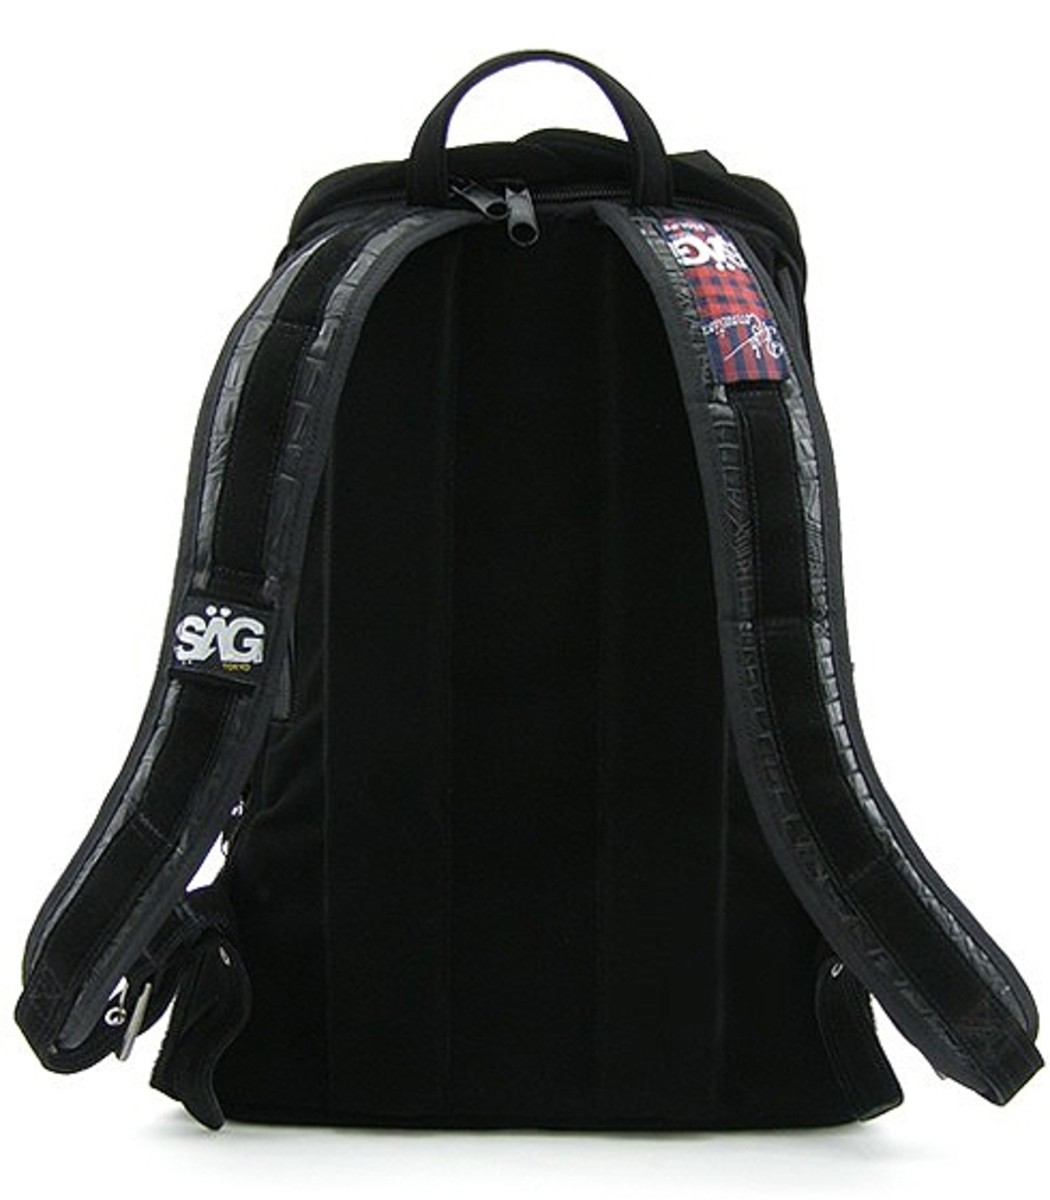 SAGLIFE (SAGLIFE) x PUSH CONNECTION - Velvet Backpack